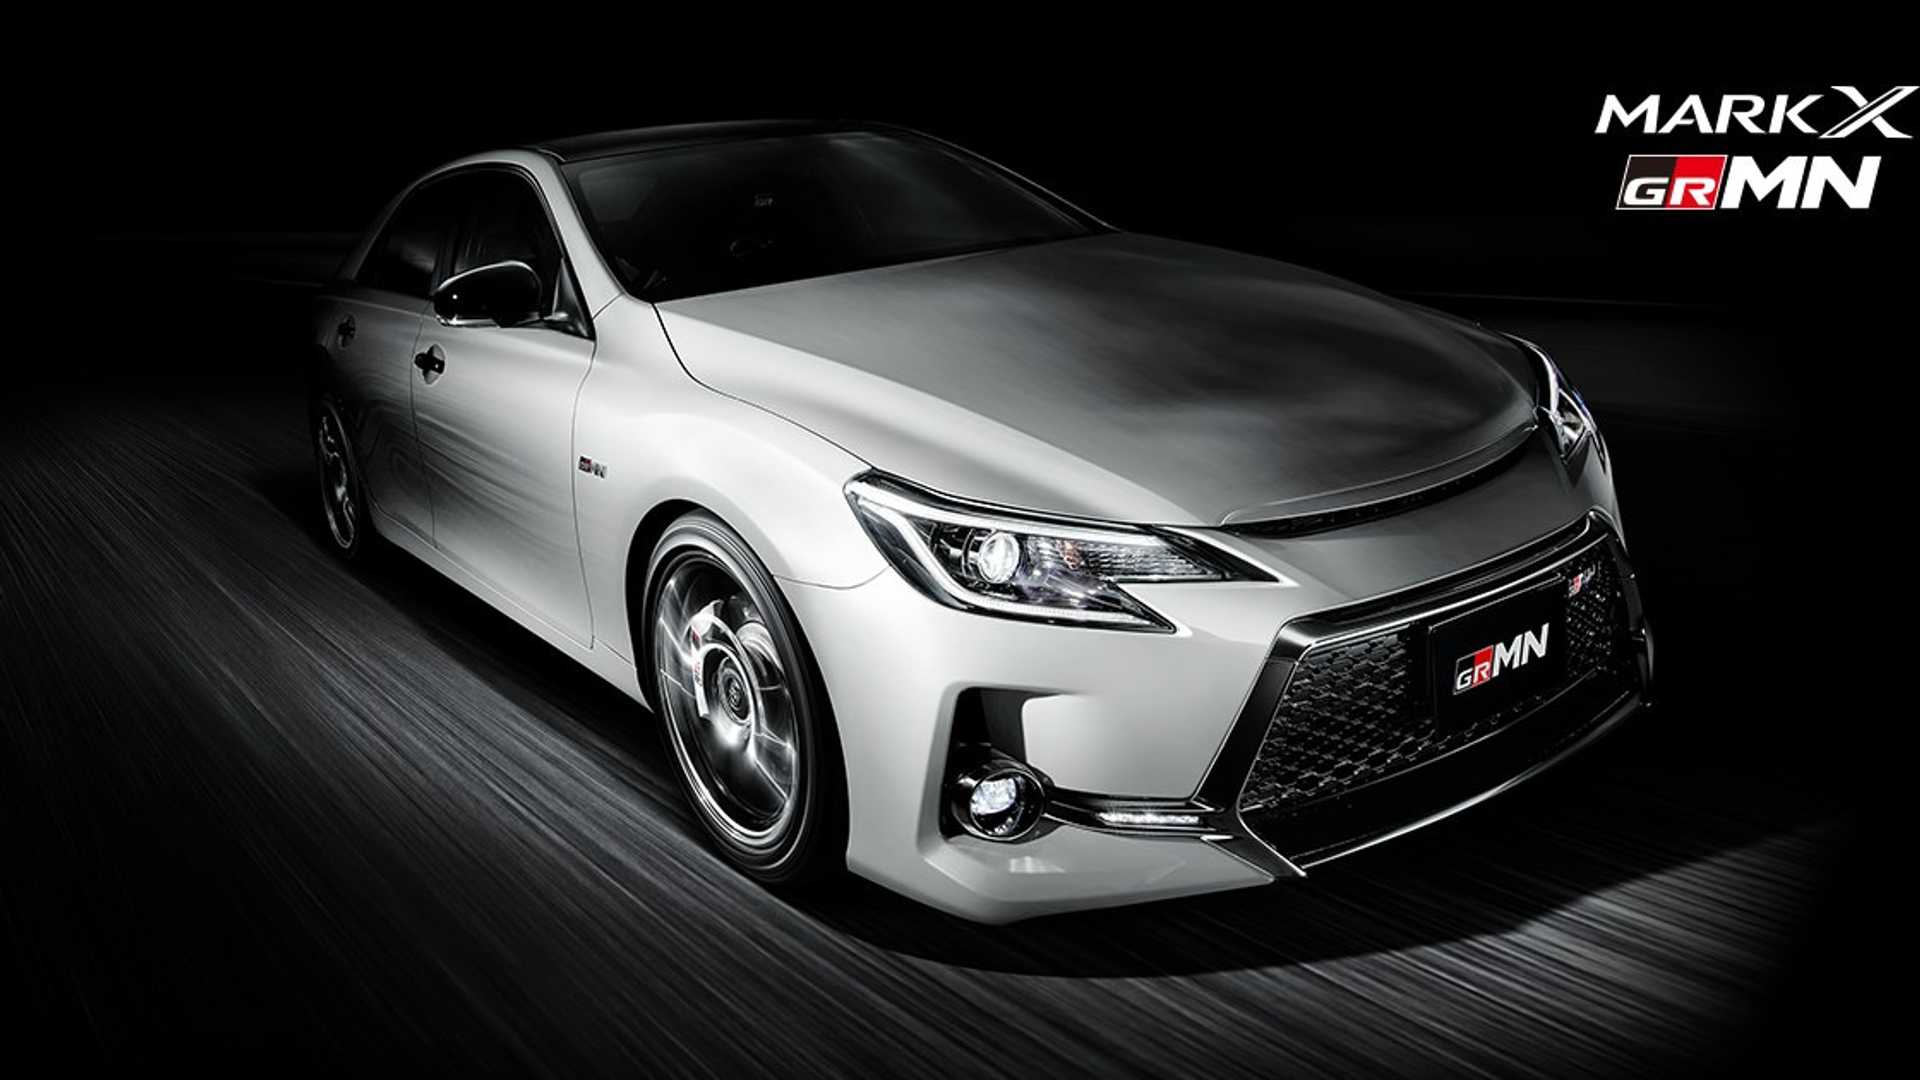 2019 Toyota Mark X GRMN Limited Edition Revealed - Only